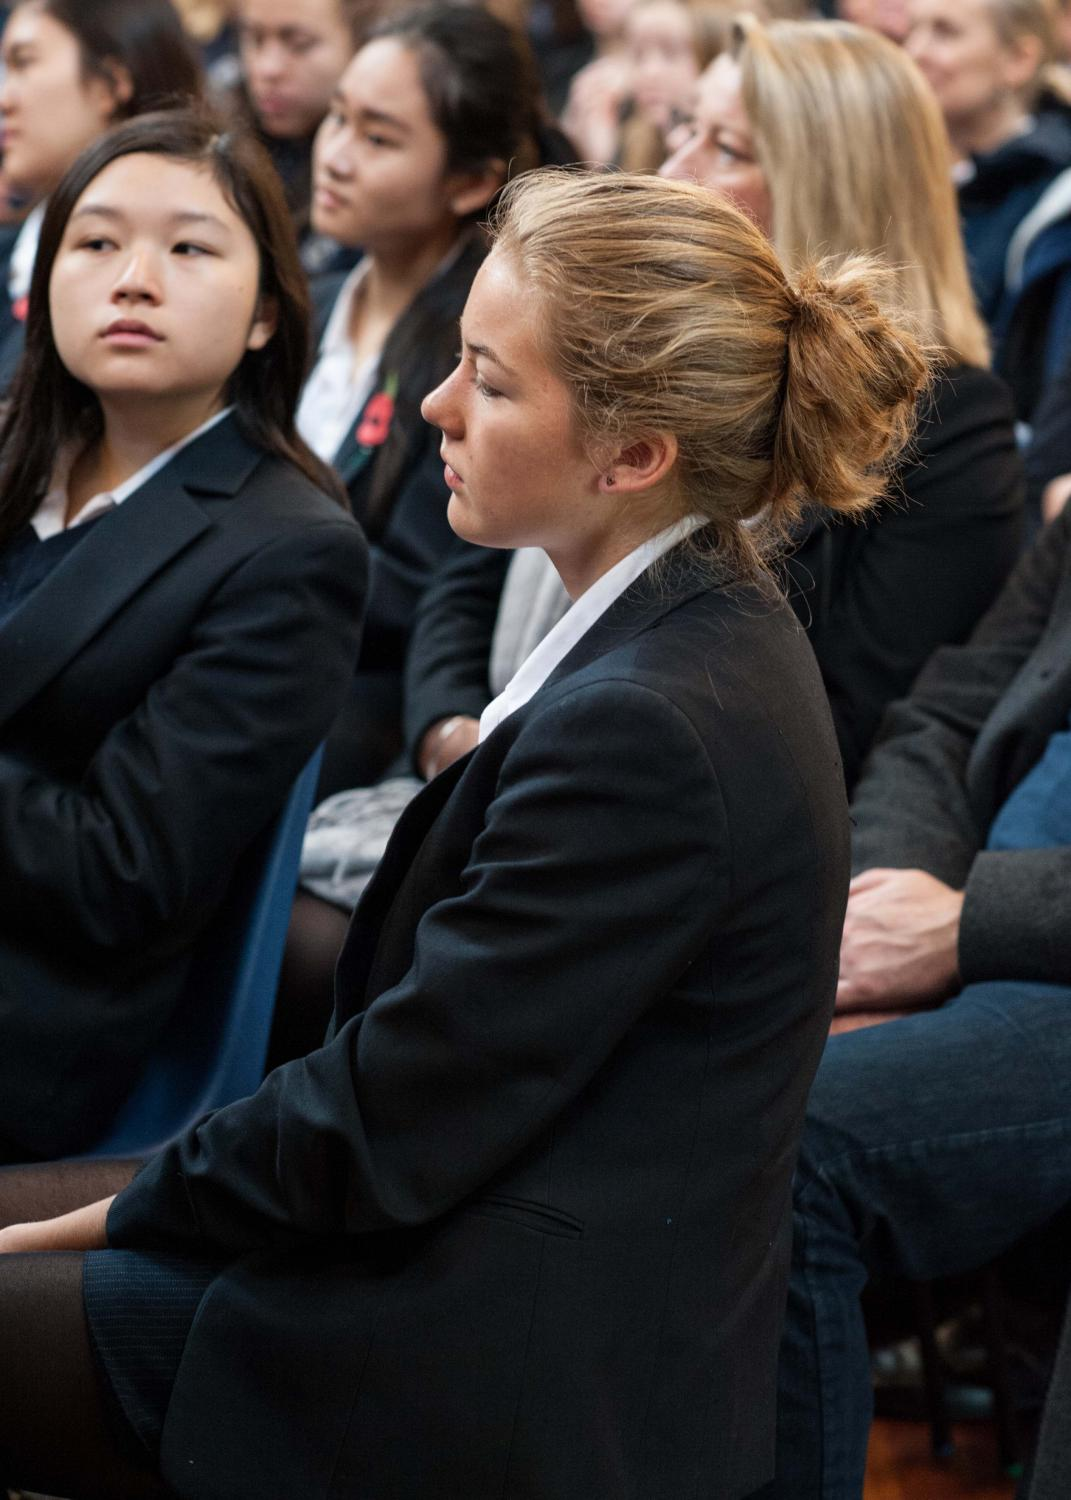 Students listen to speakers at the Careers Fair at Lancing College